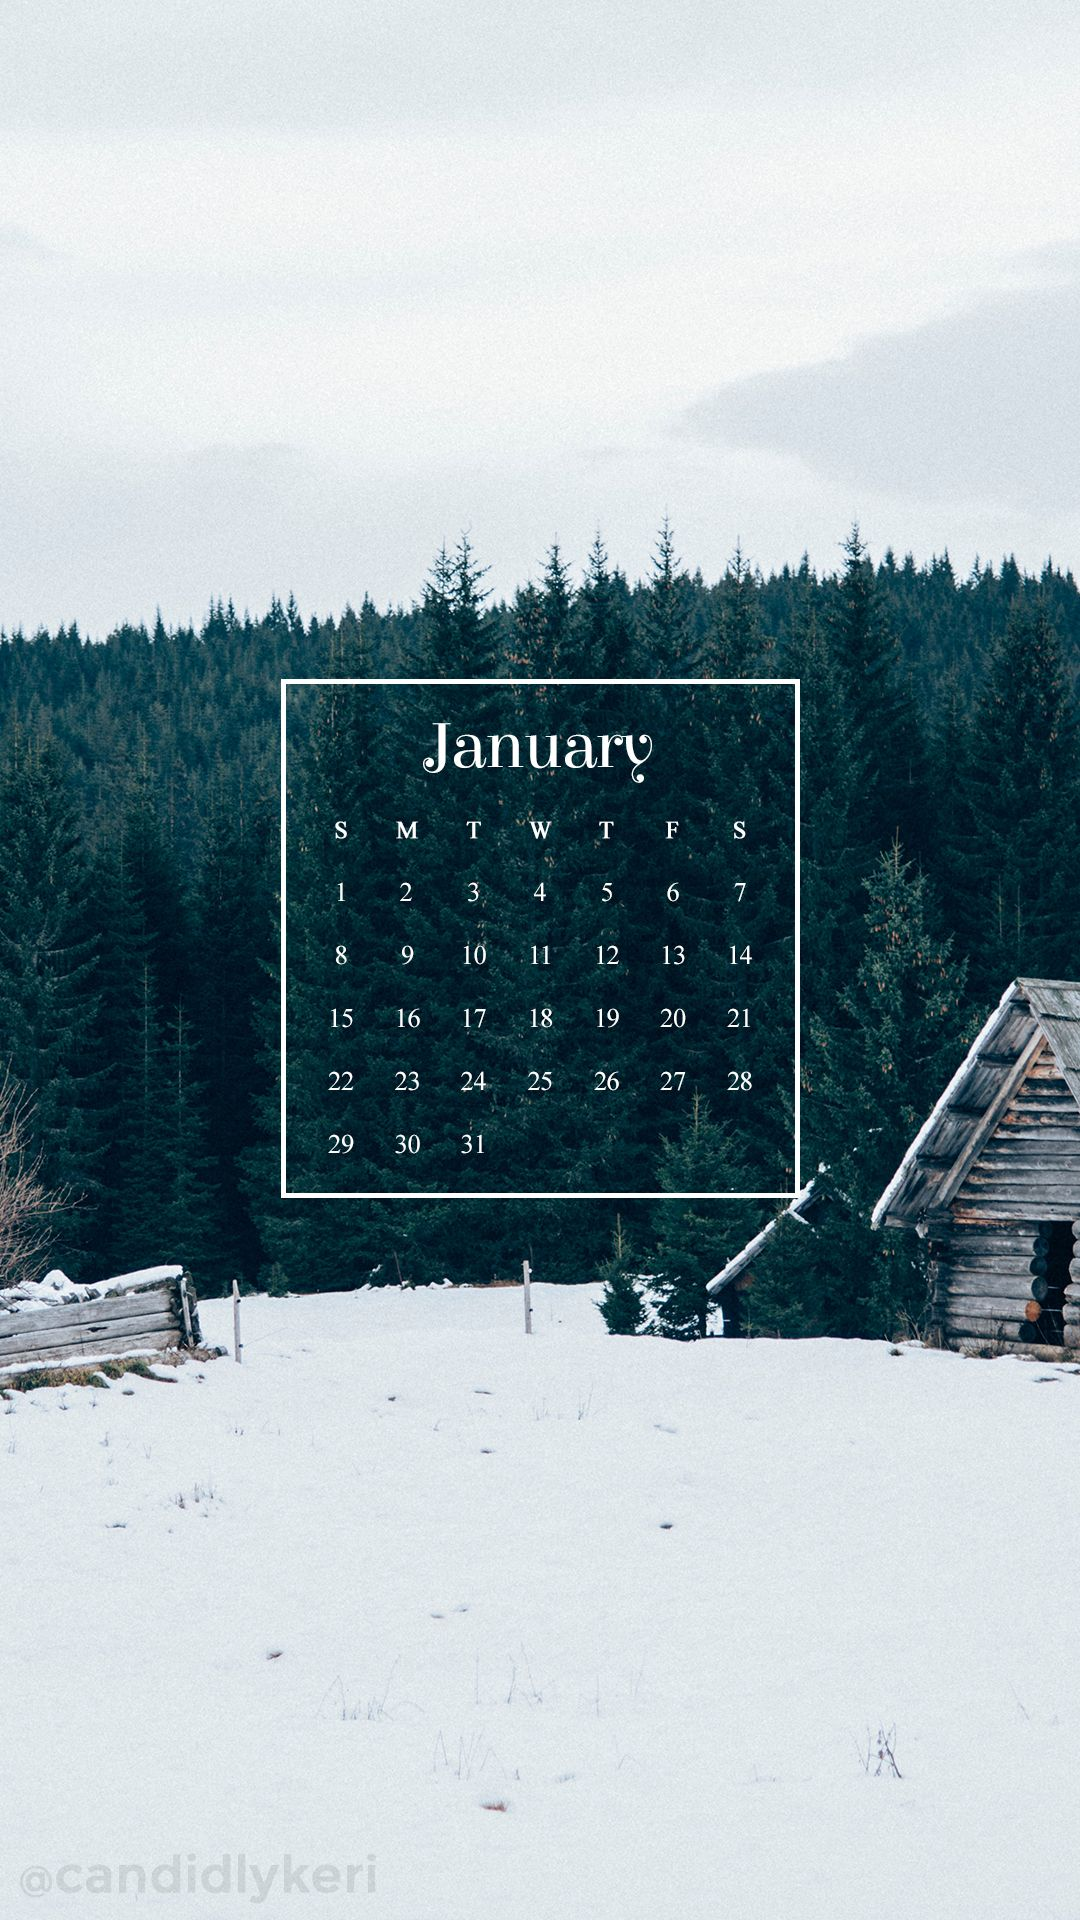 Fr fr free january 2017 desktop wallpaper - Winter Cabin Snow Forest Background January Calendar 2017 Wallpaper You Can Download For Free On The